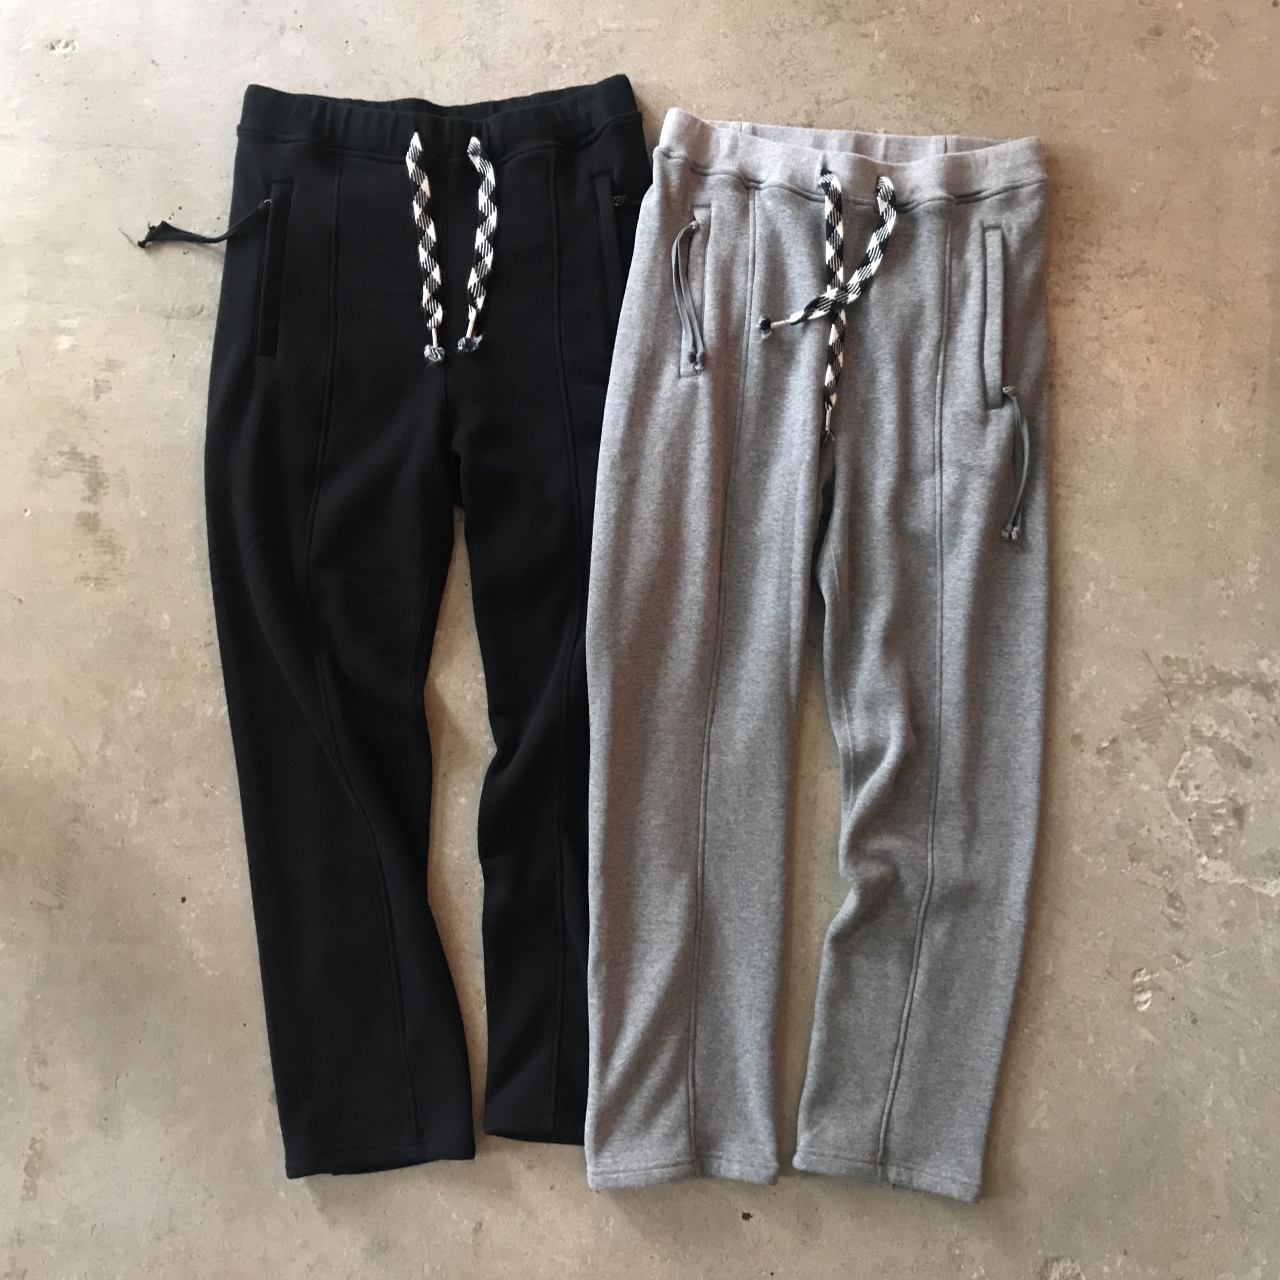 YSTRDY'S TMRRW - FAUX MOUTON WARM UP PANTS